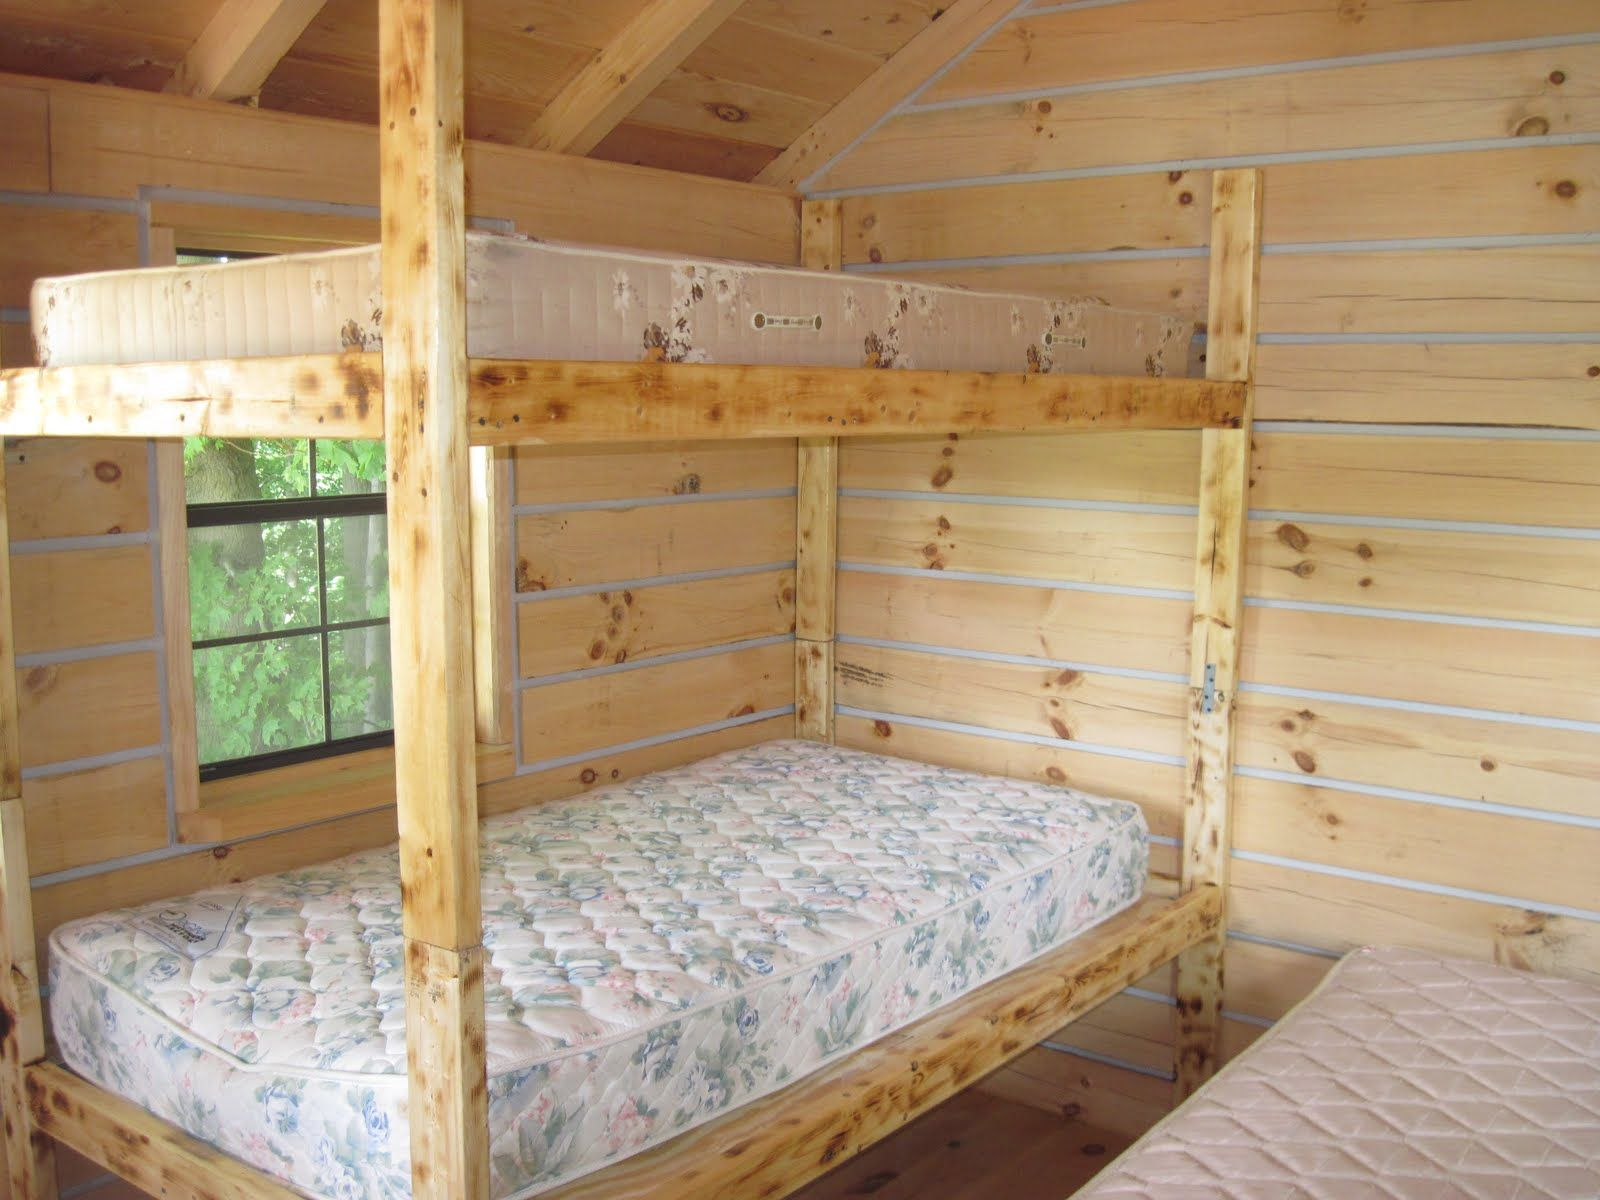 cabin bunk bed plans wood bunk bed designs for every cabin showing 2 log bunk beds - Bunk Beds Design Plans